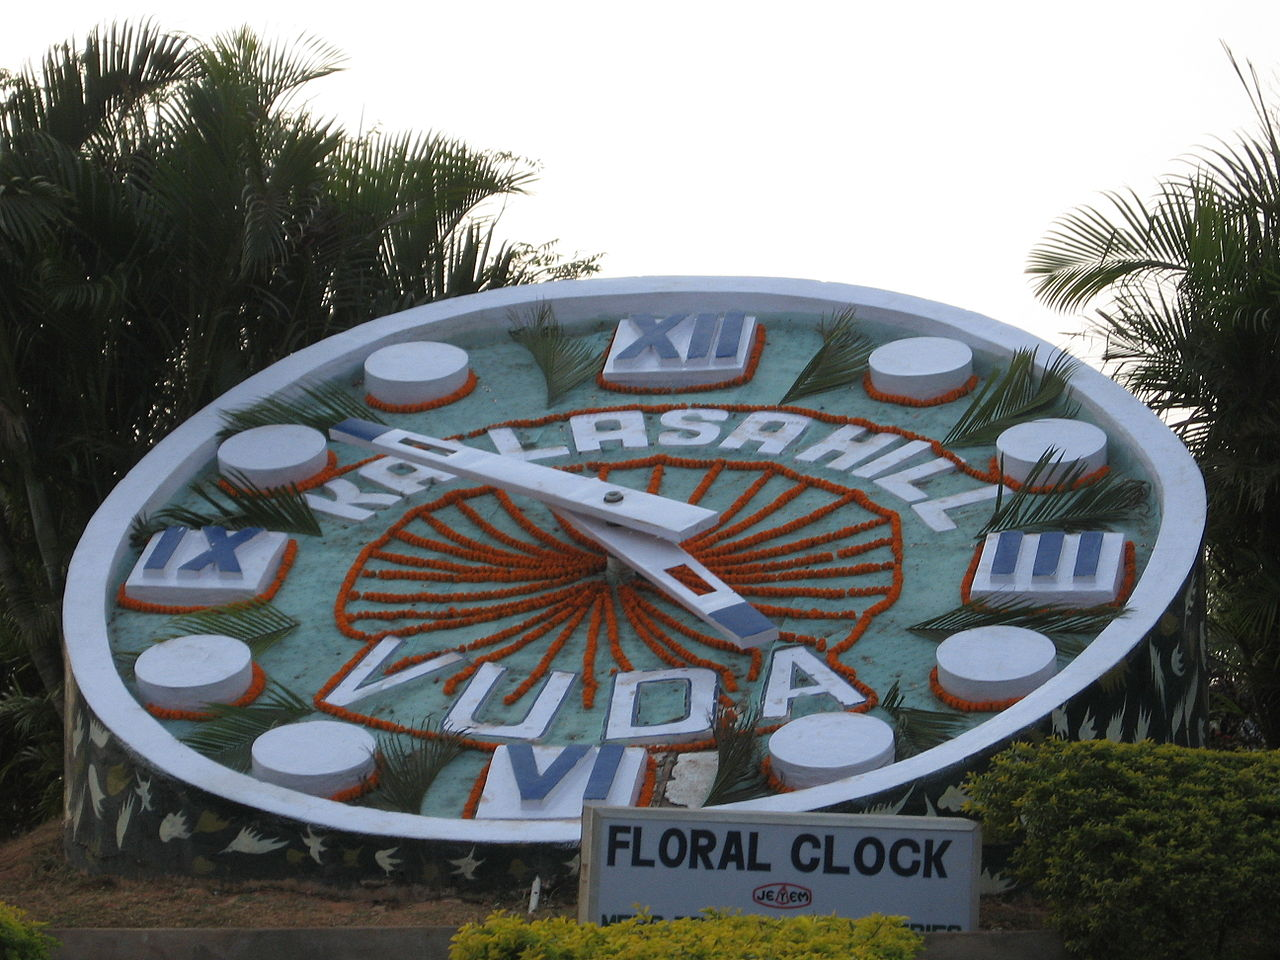 Top Attraction Place In Kailasagiri Hills-Floral Clock